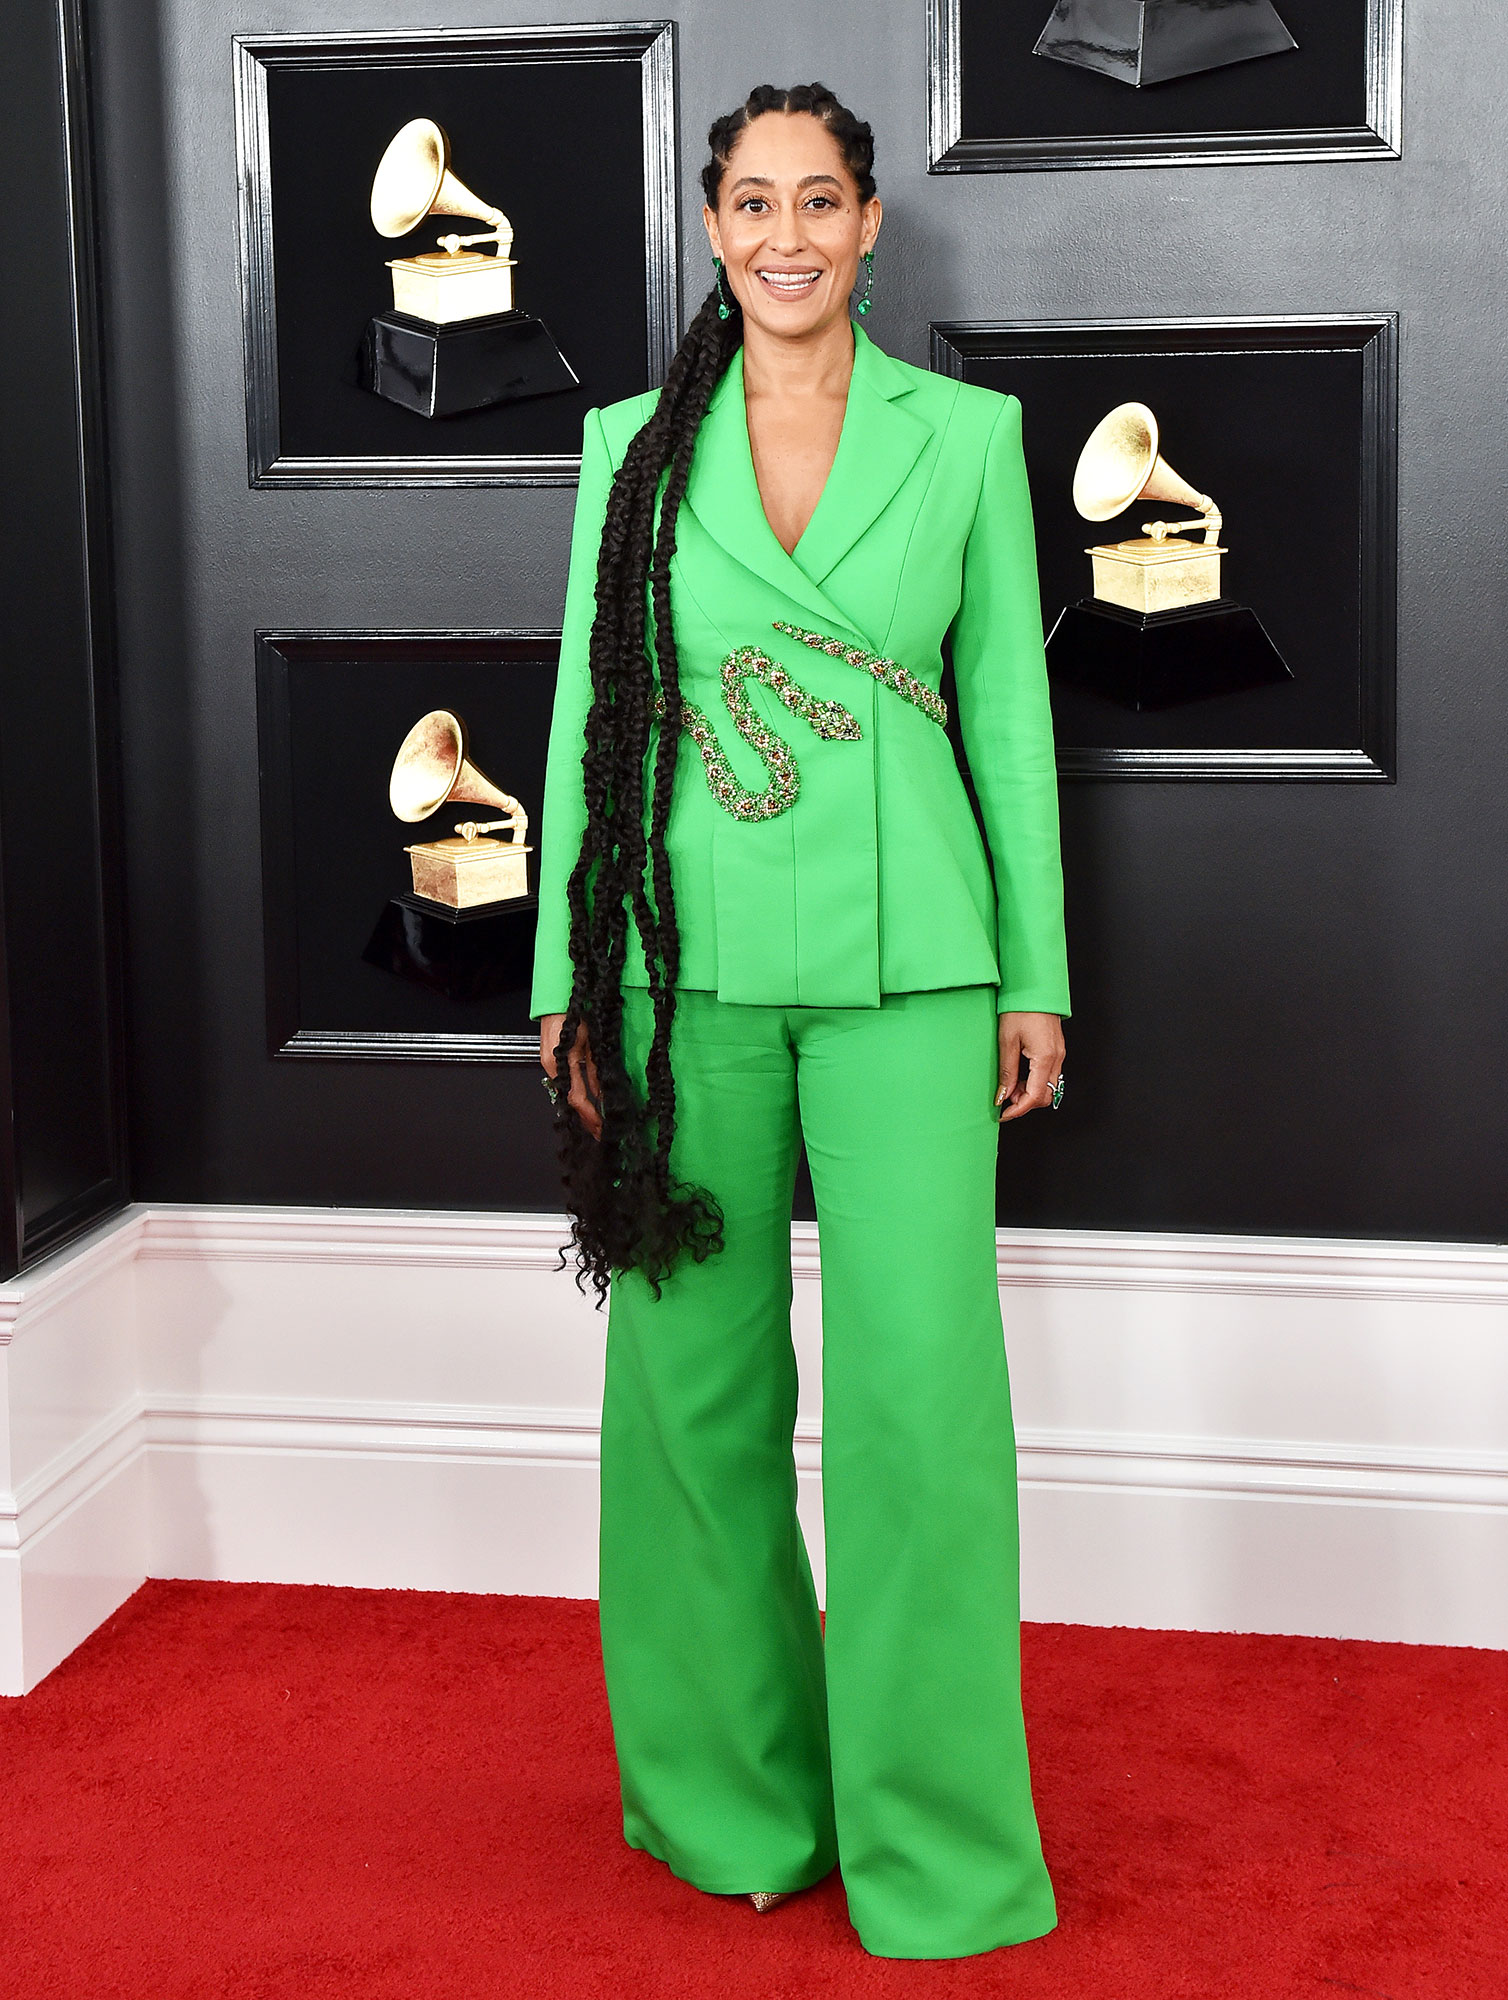 grammys 2019 Tracee Ellis Ross - Hair down to there! The Black-ish star relied on the show's Department Head of Hair Araxi Lindsay to style her locks and wow, did they turn heads!